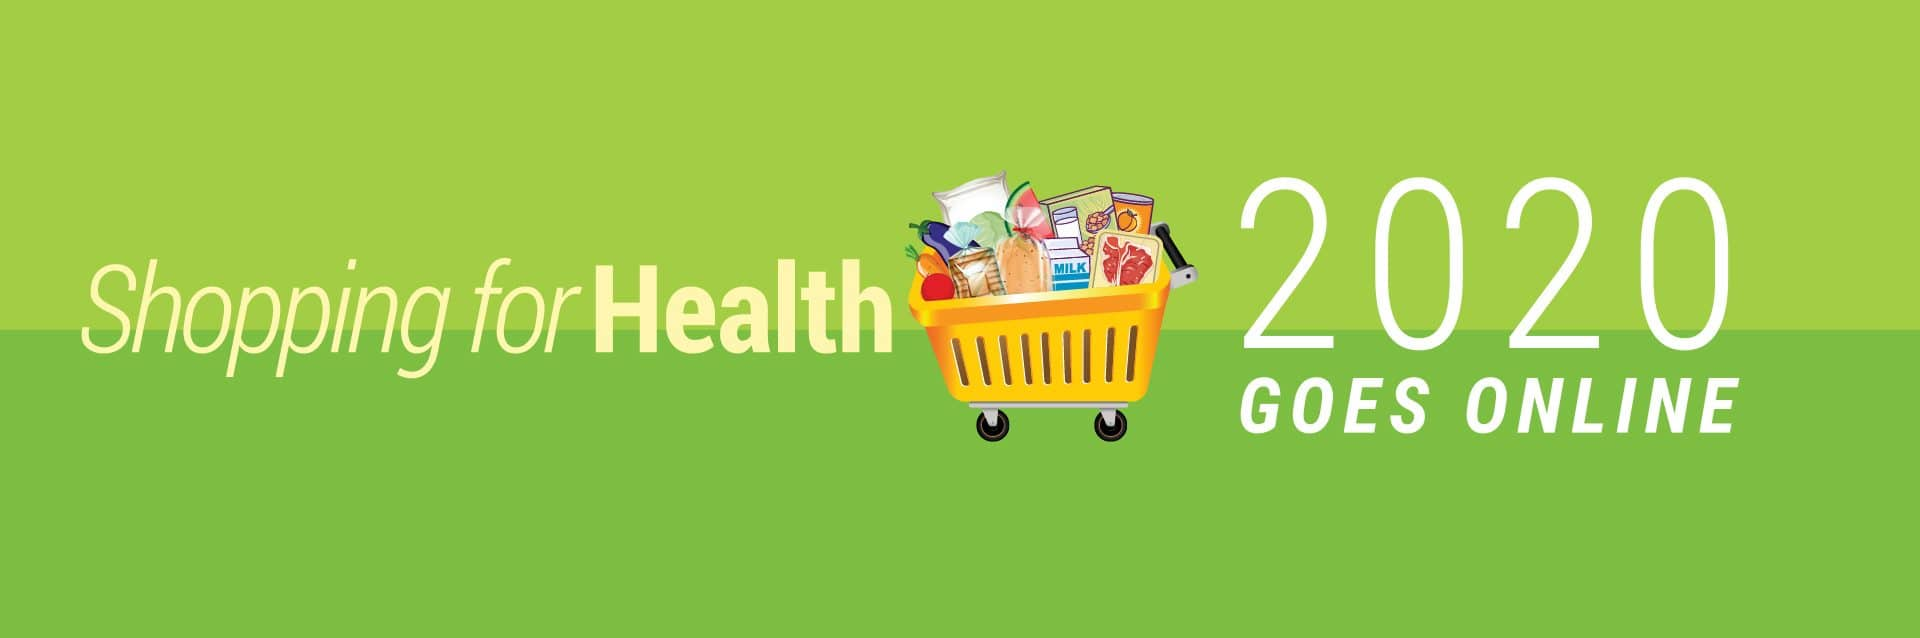 Shopping for Health 2020 Goes Online